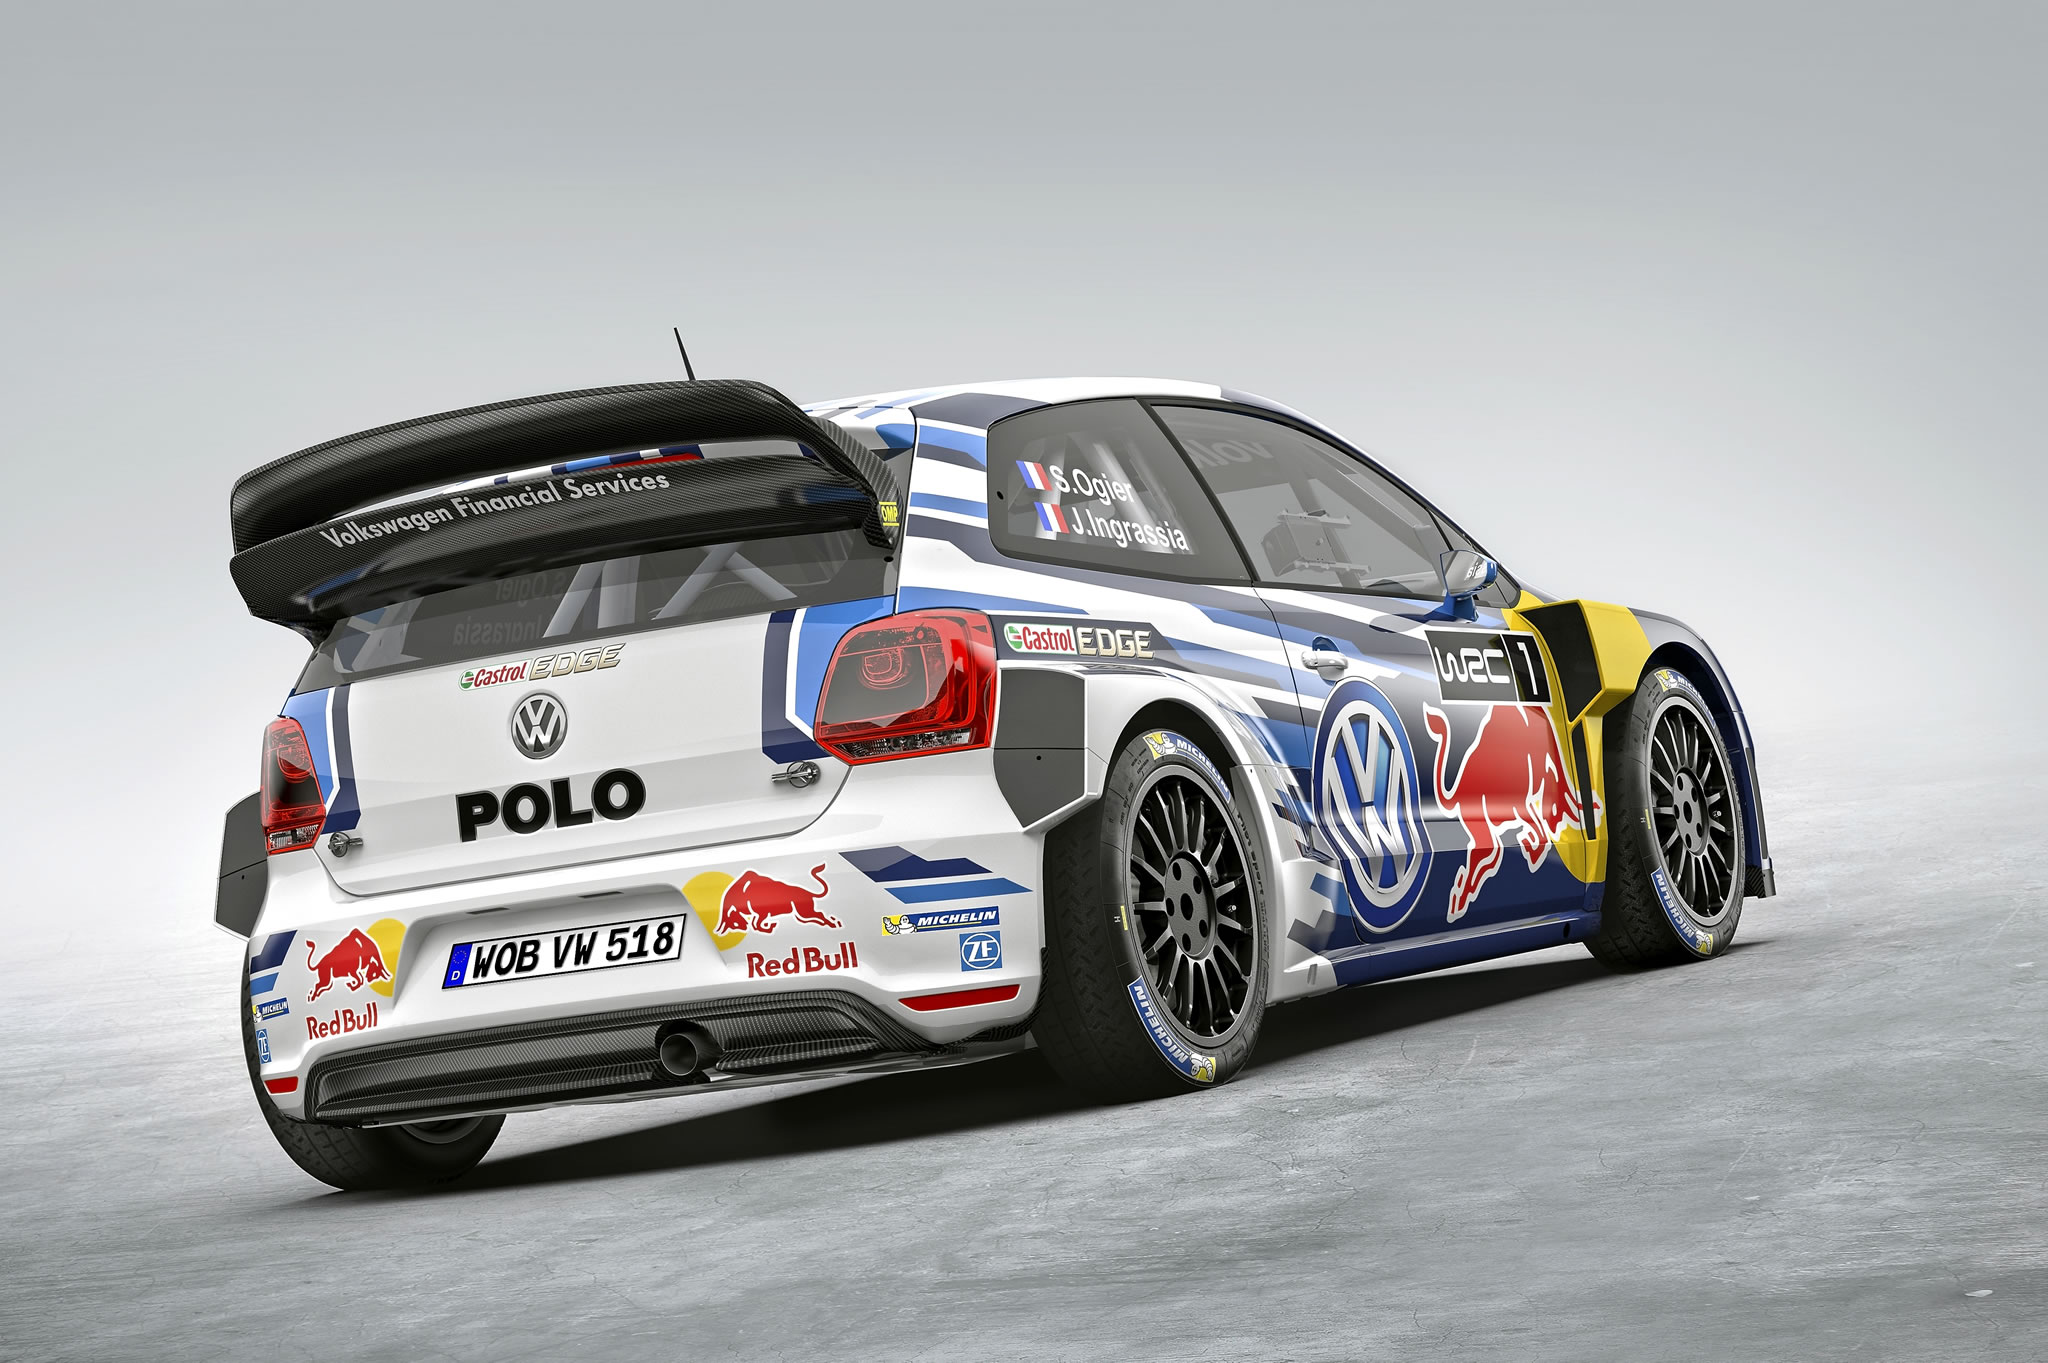 2015 volkswagen polo r wrc rally car rear photo. Black Bedroom Furniture Sets. Home Design Ideas